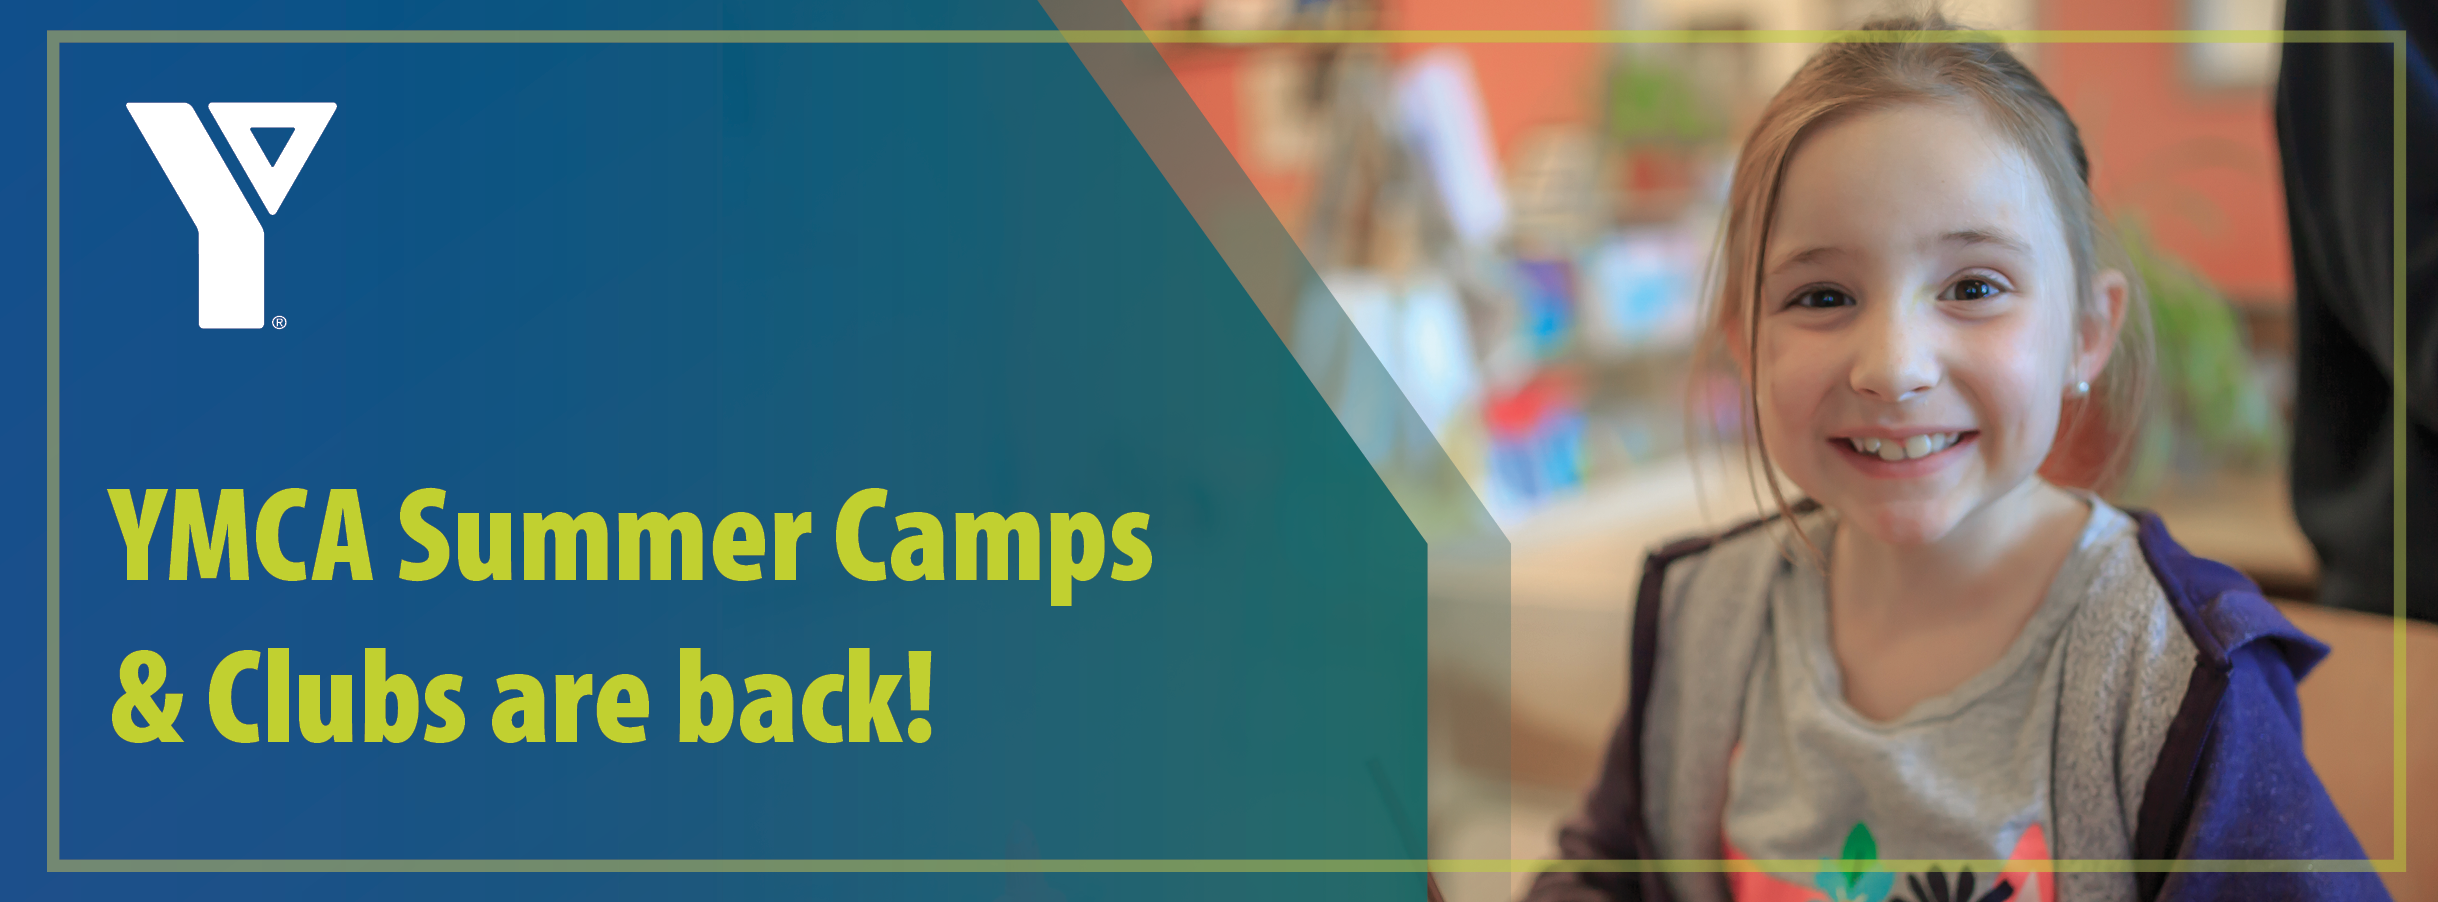 YMCA Summer Camps & Clubs are back!